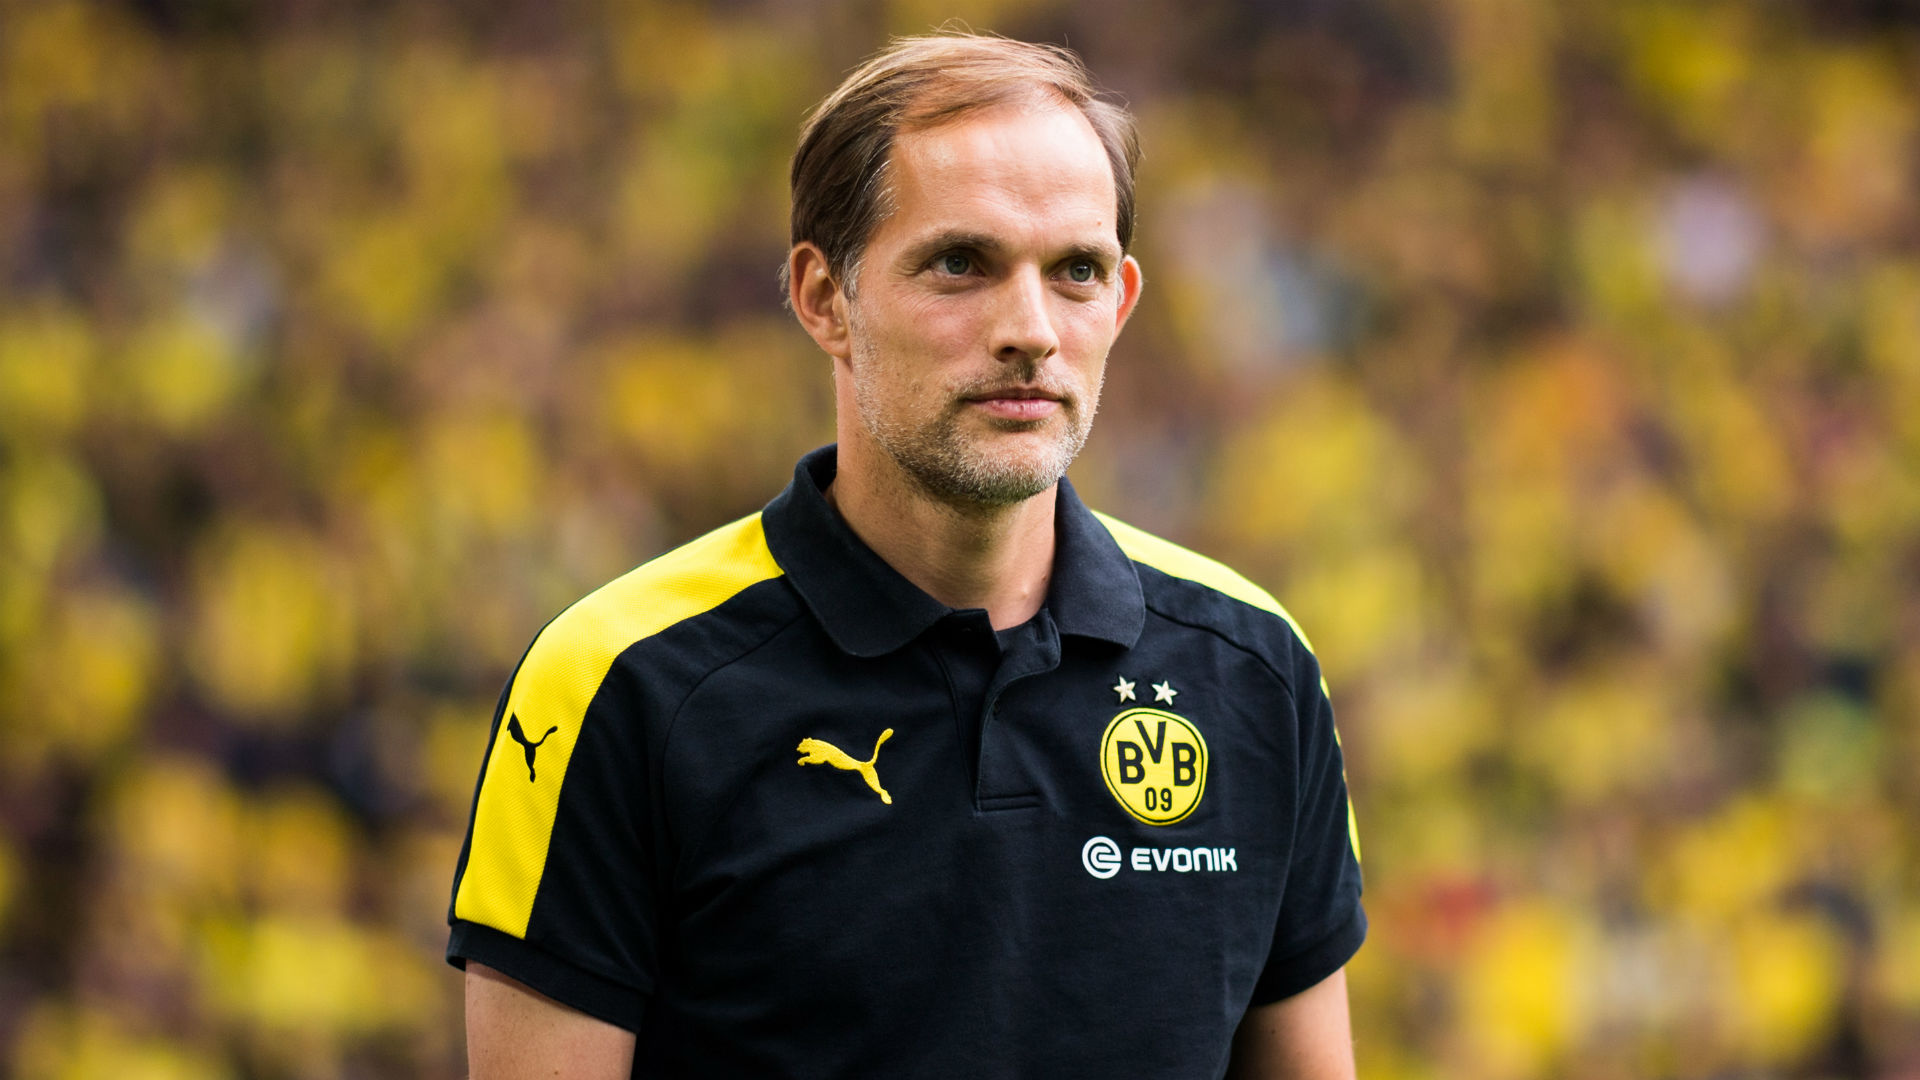 Image result for tHOMAS TUCHEL BORUSSIA DORTMUND